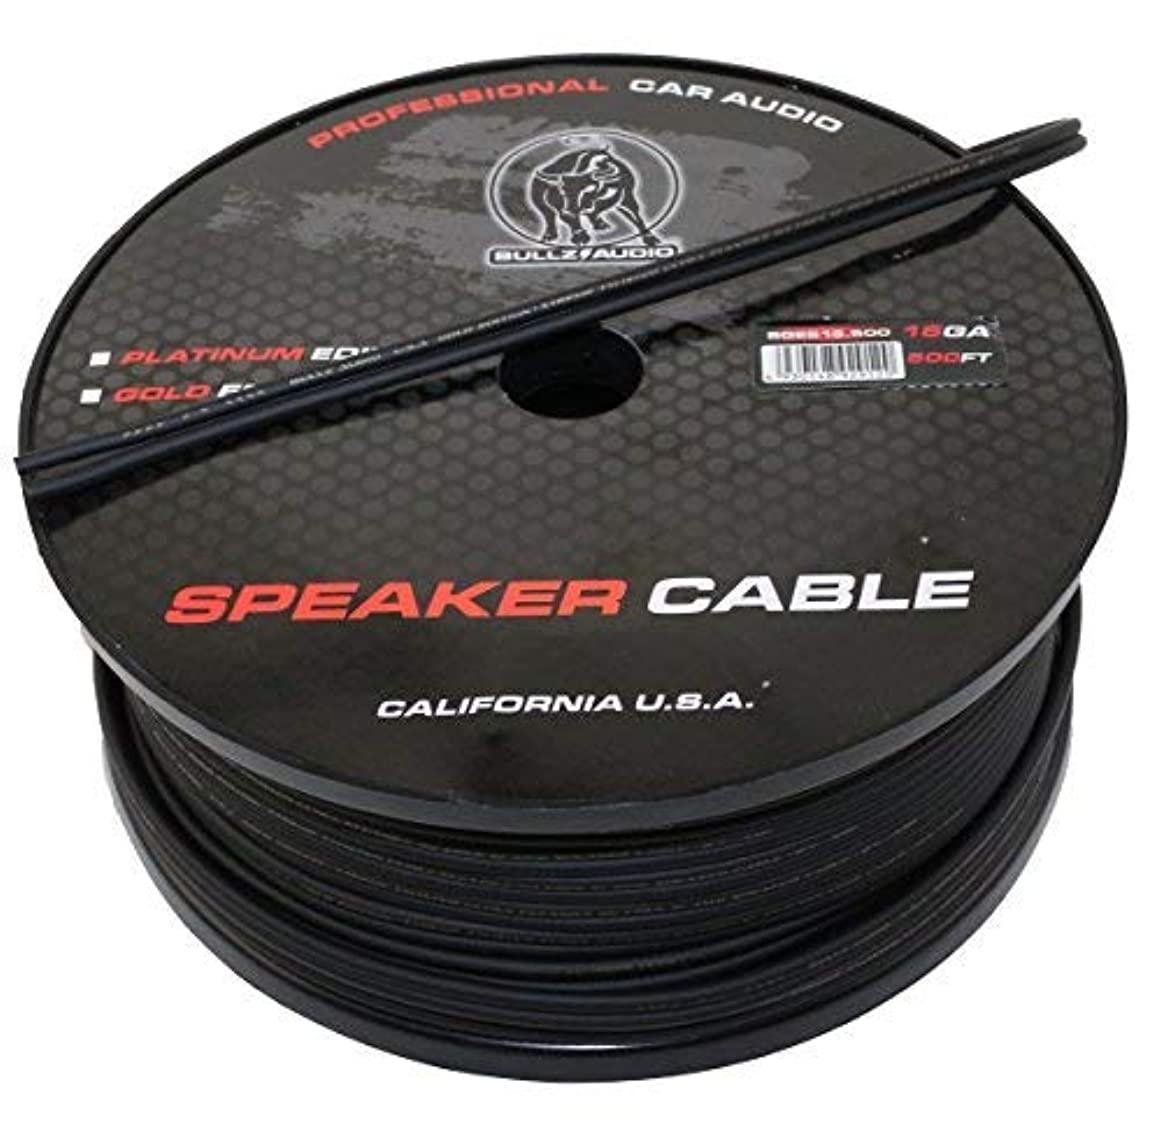 ビーズジャングルストレスBullz Audio BGES16.500 500' 16 Gauge AWG Car Home Audio Speaker Wire Cable Spool (Black) [並行輸入品]